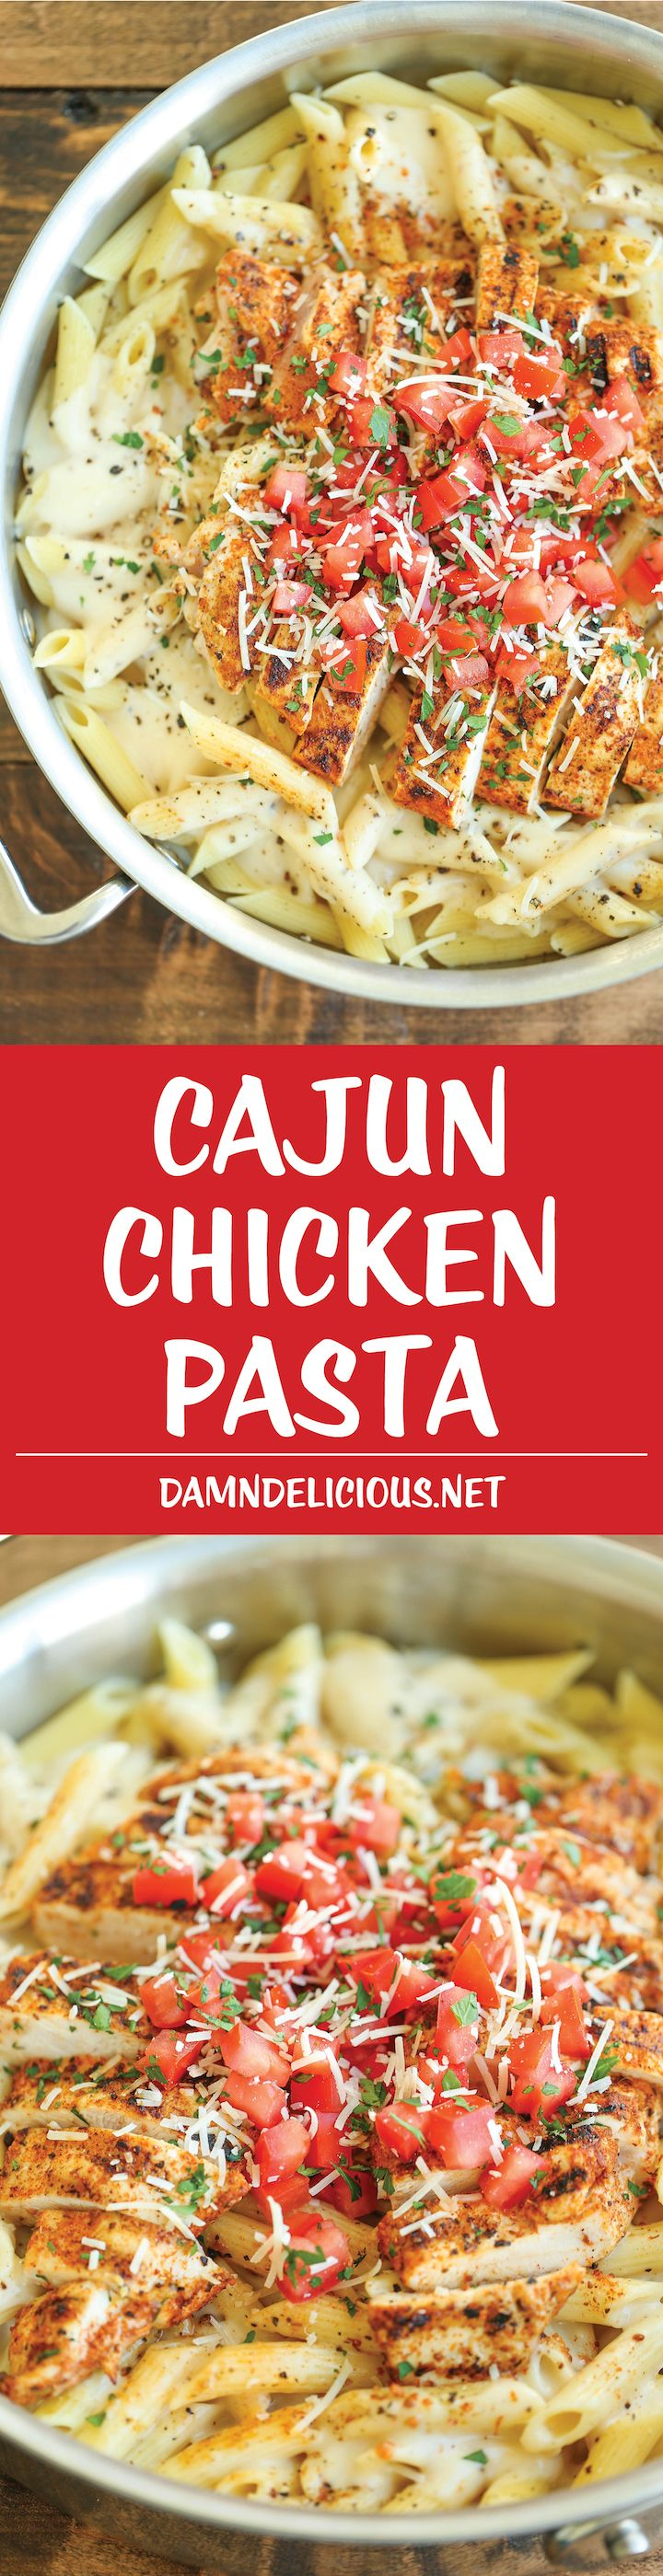 Recipe: Cajun Chicken Pasta - Chili's copycat recipe made at home with an amazingly creamy melt-in-your-mouth alfredo sauce. And you know it tastes 10000x better!